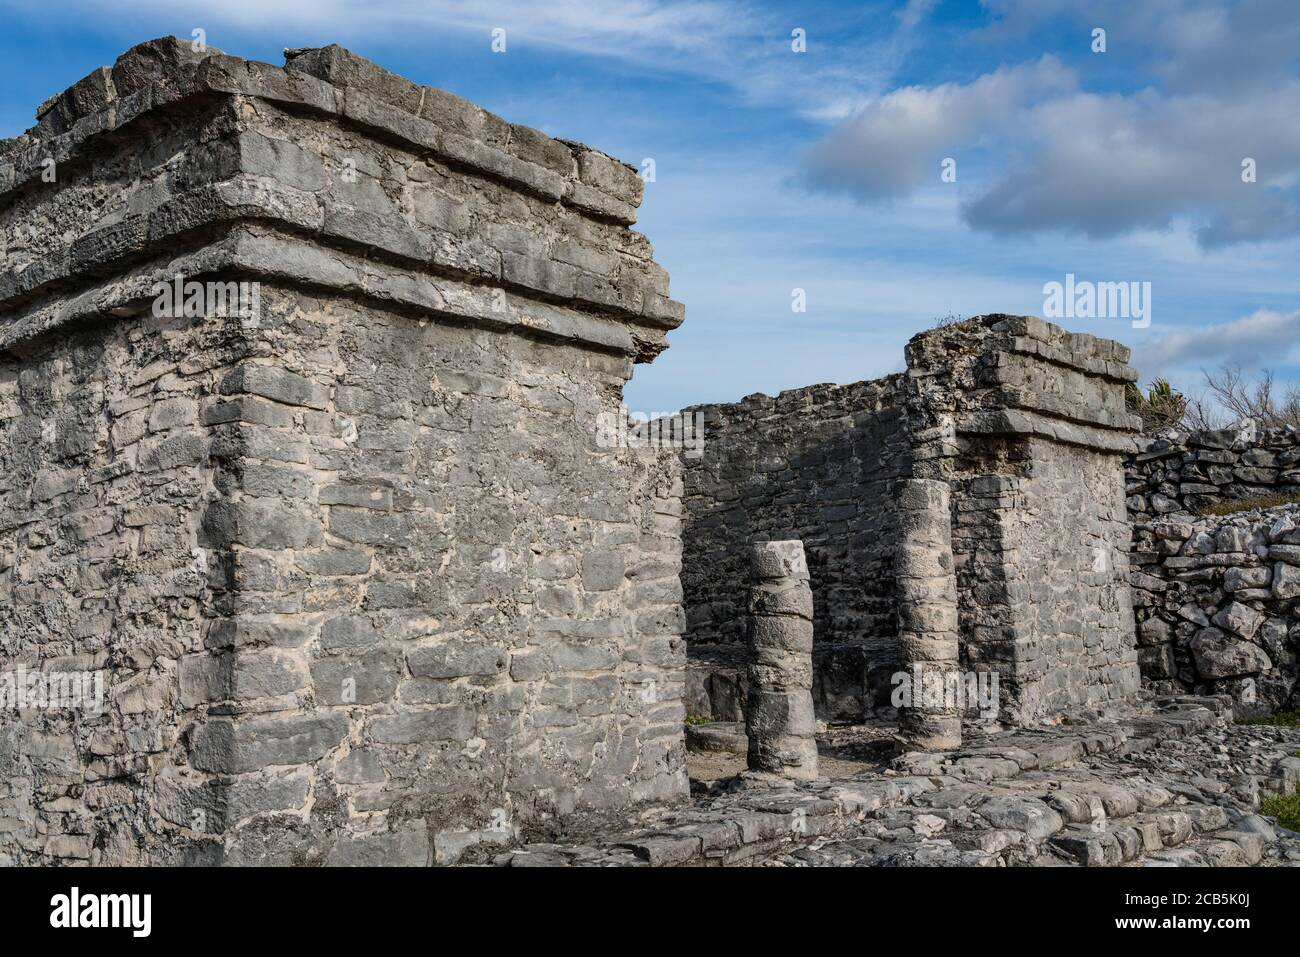 The House of the Cenote in the ruins of the Mayan city of Tulum on the coast of the Caribbean Sea.    Tulum National Park, Quintana Roo, Mexico.  It i Stock Photo